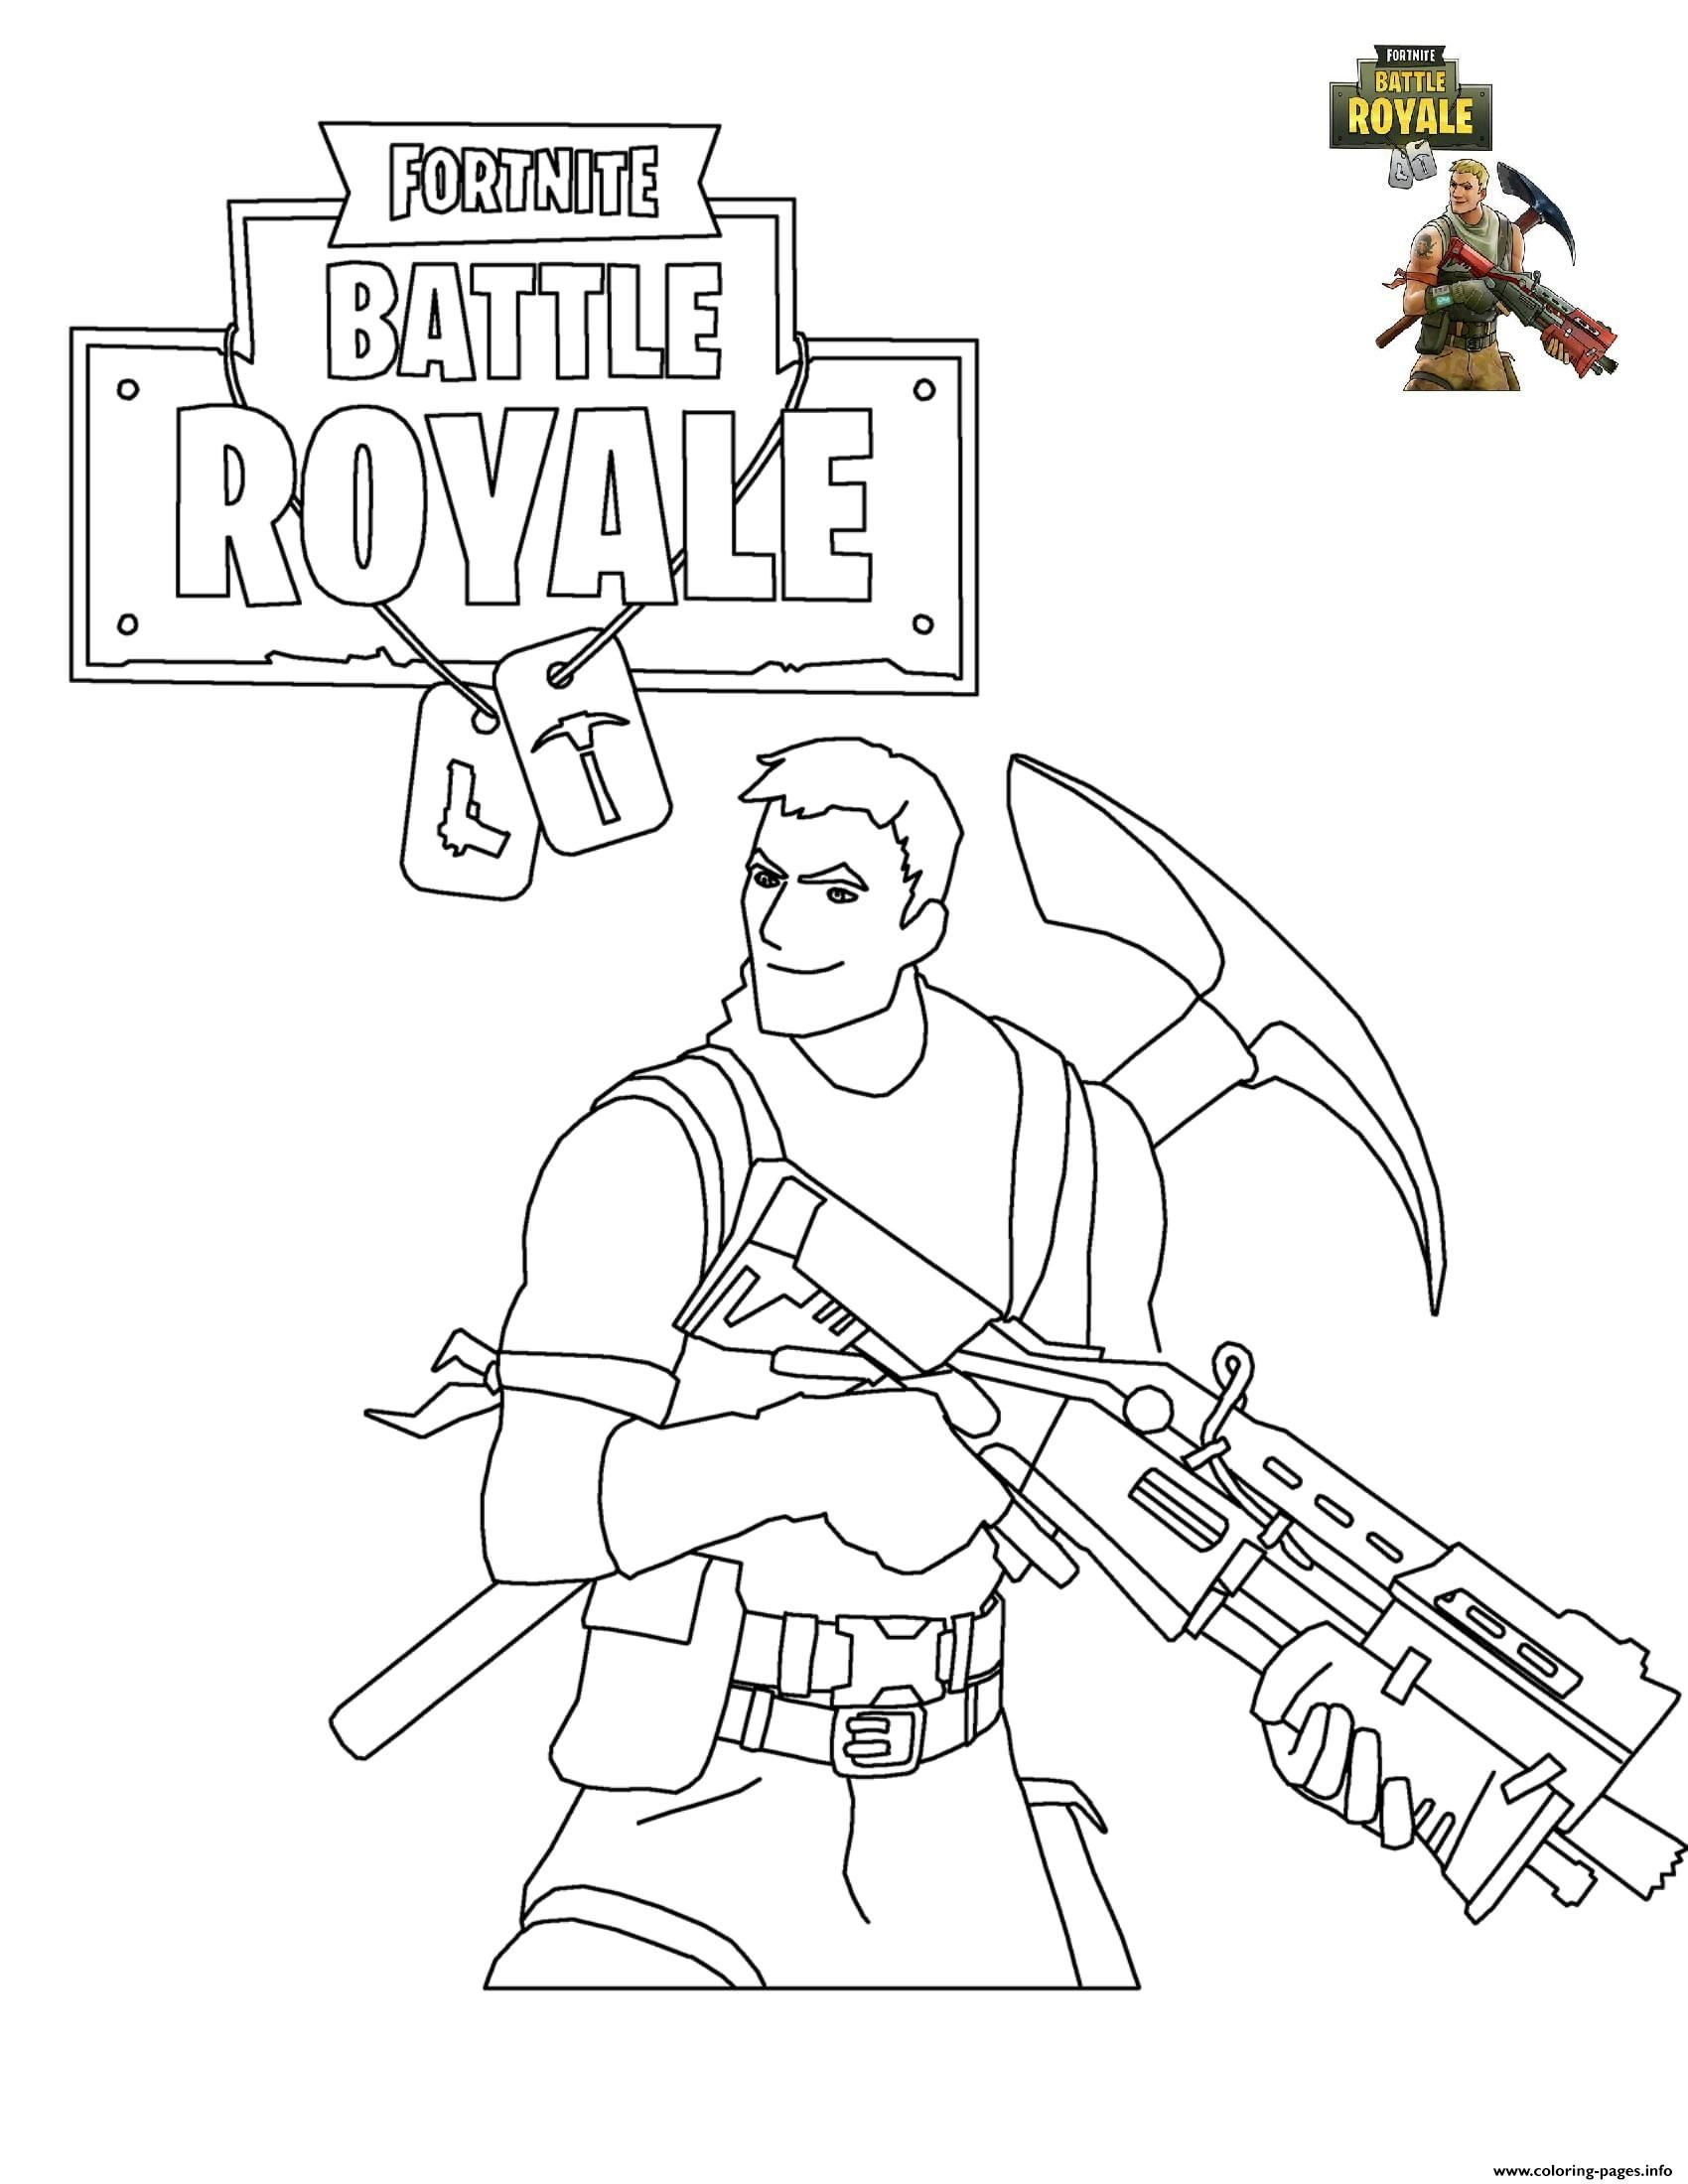 Fortnite Battle Royale Coloring Pages Malvorlagen Kostenlose Ausmalbilder Malbuch Vorlagen